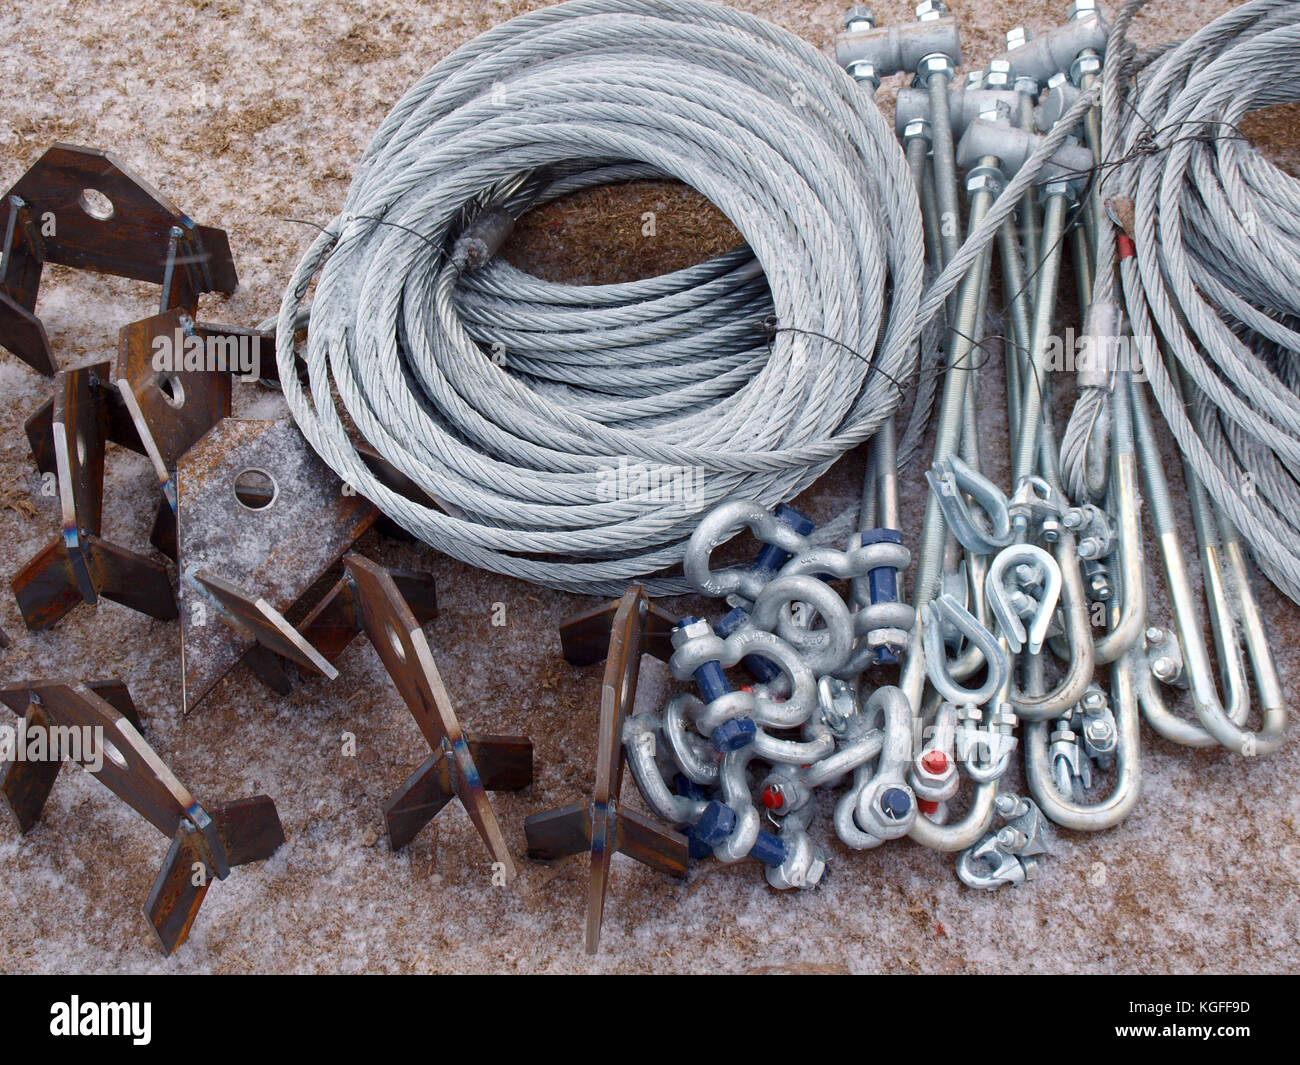 Wire Nuts Stock Photos & Wire Nuts Stock Images - Alamy